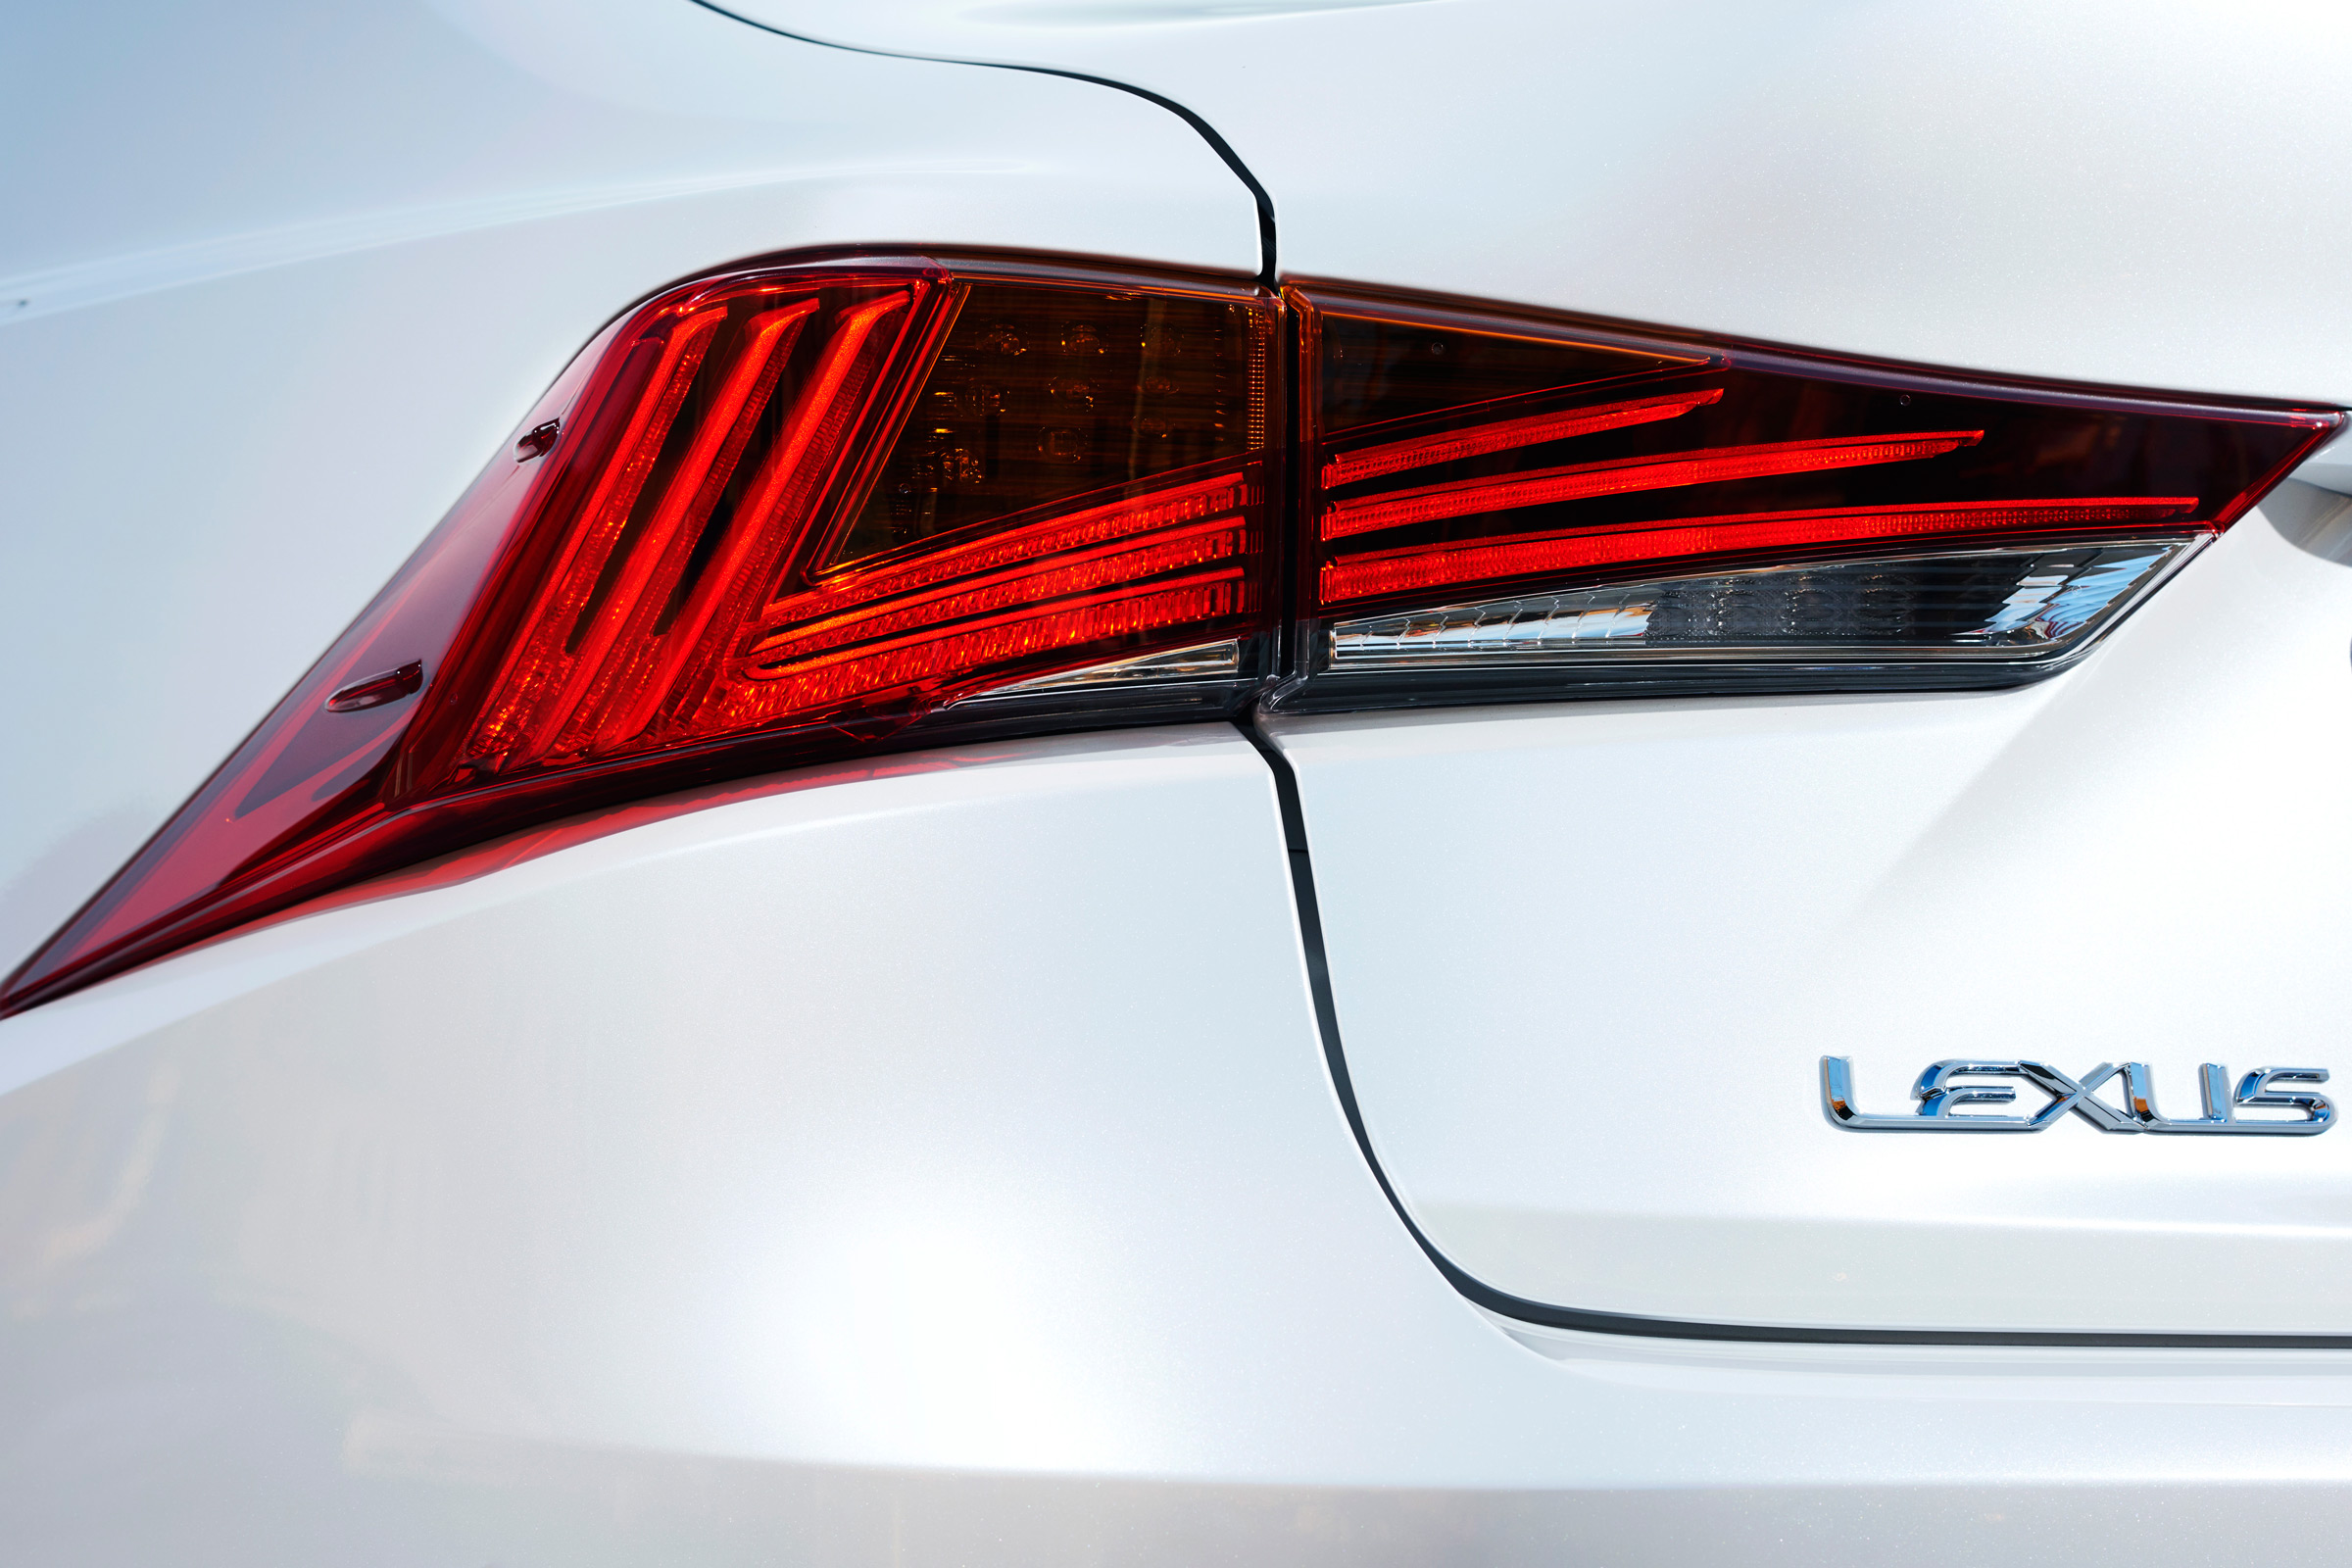 2017 Lexus IS 300h White Exterior View Taillight (View 1 of 13)